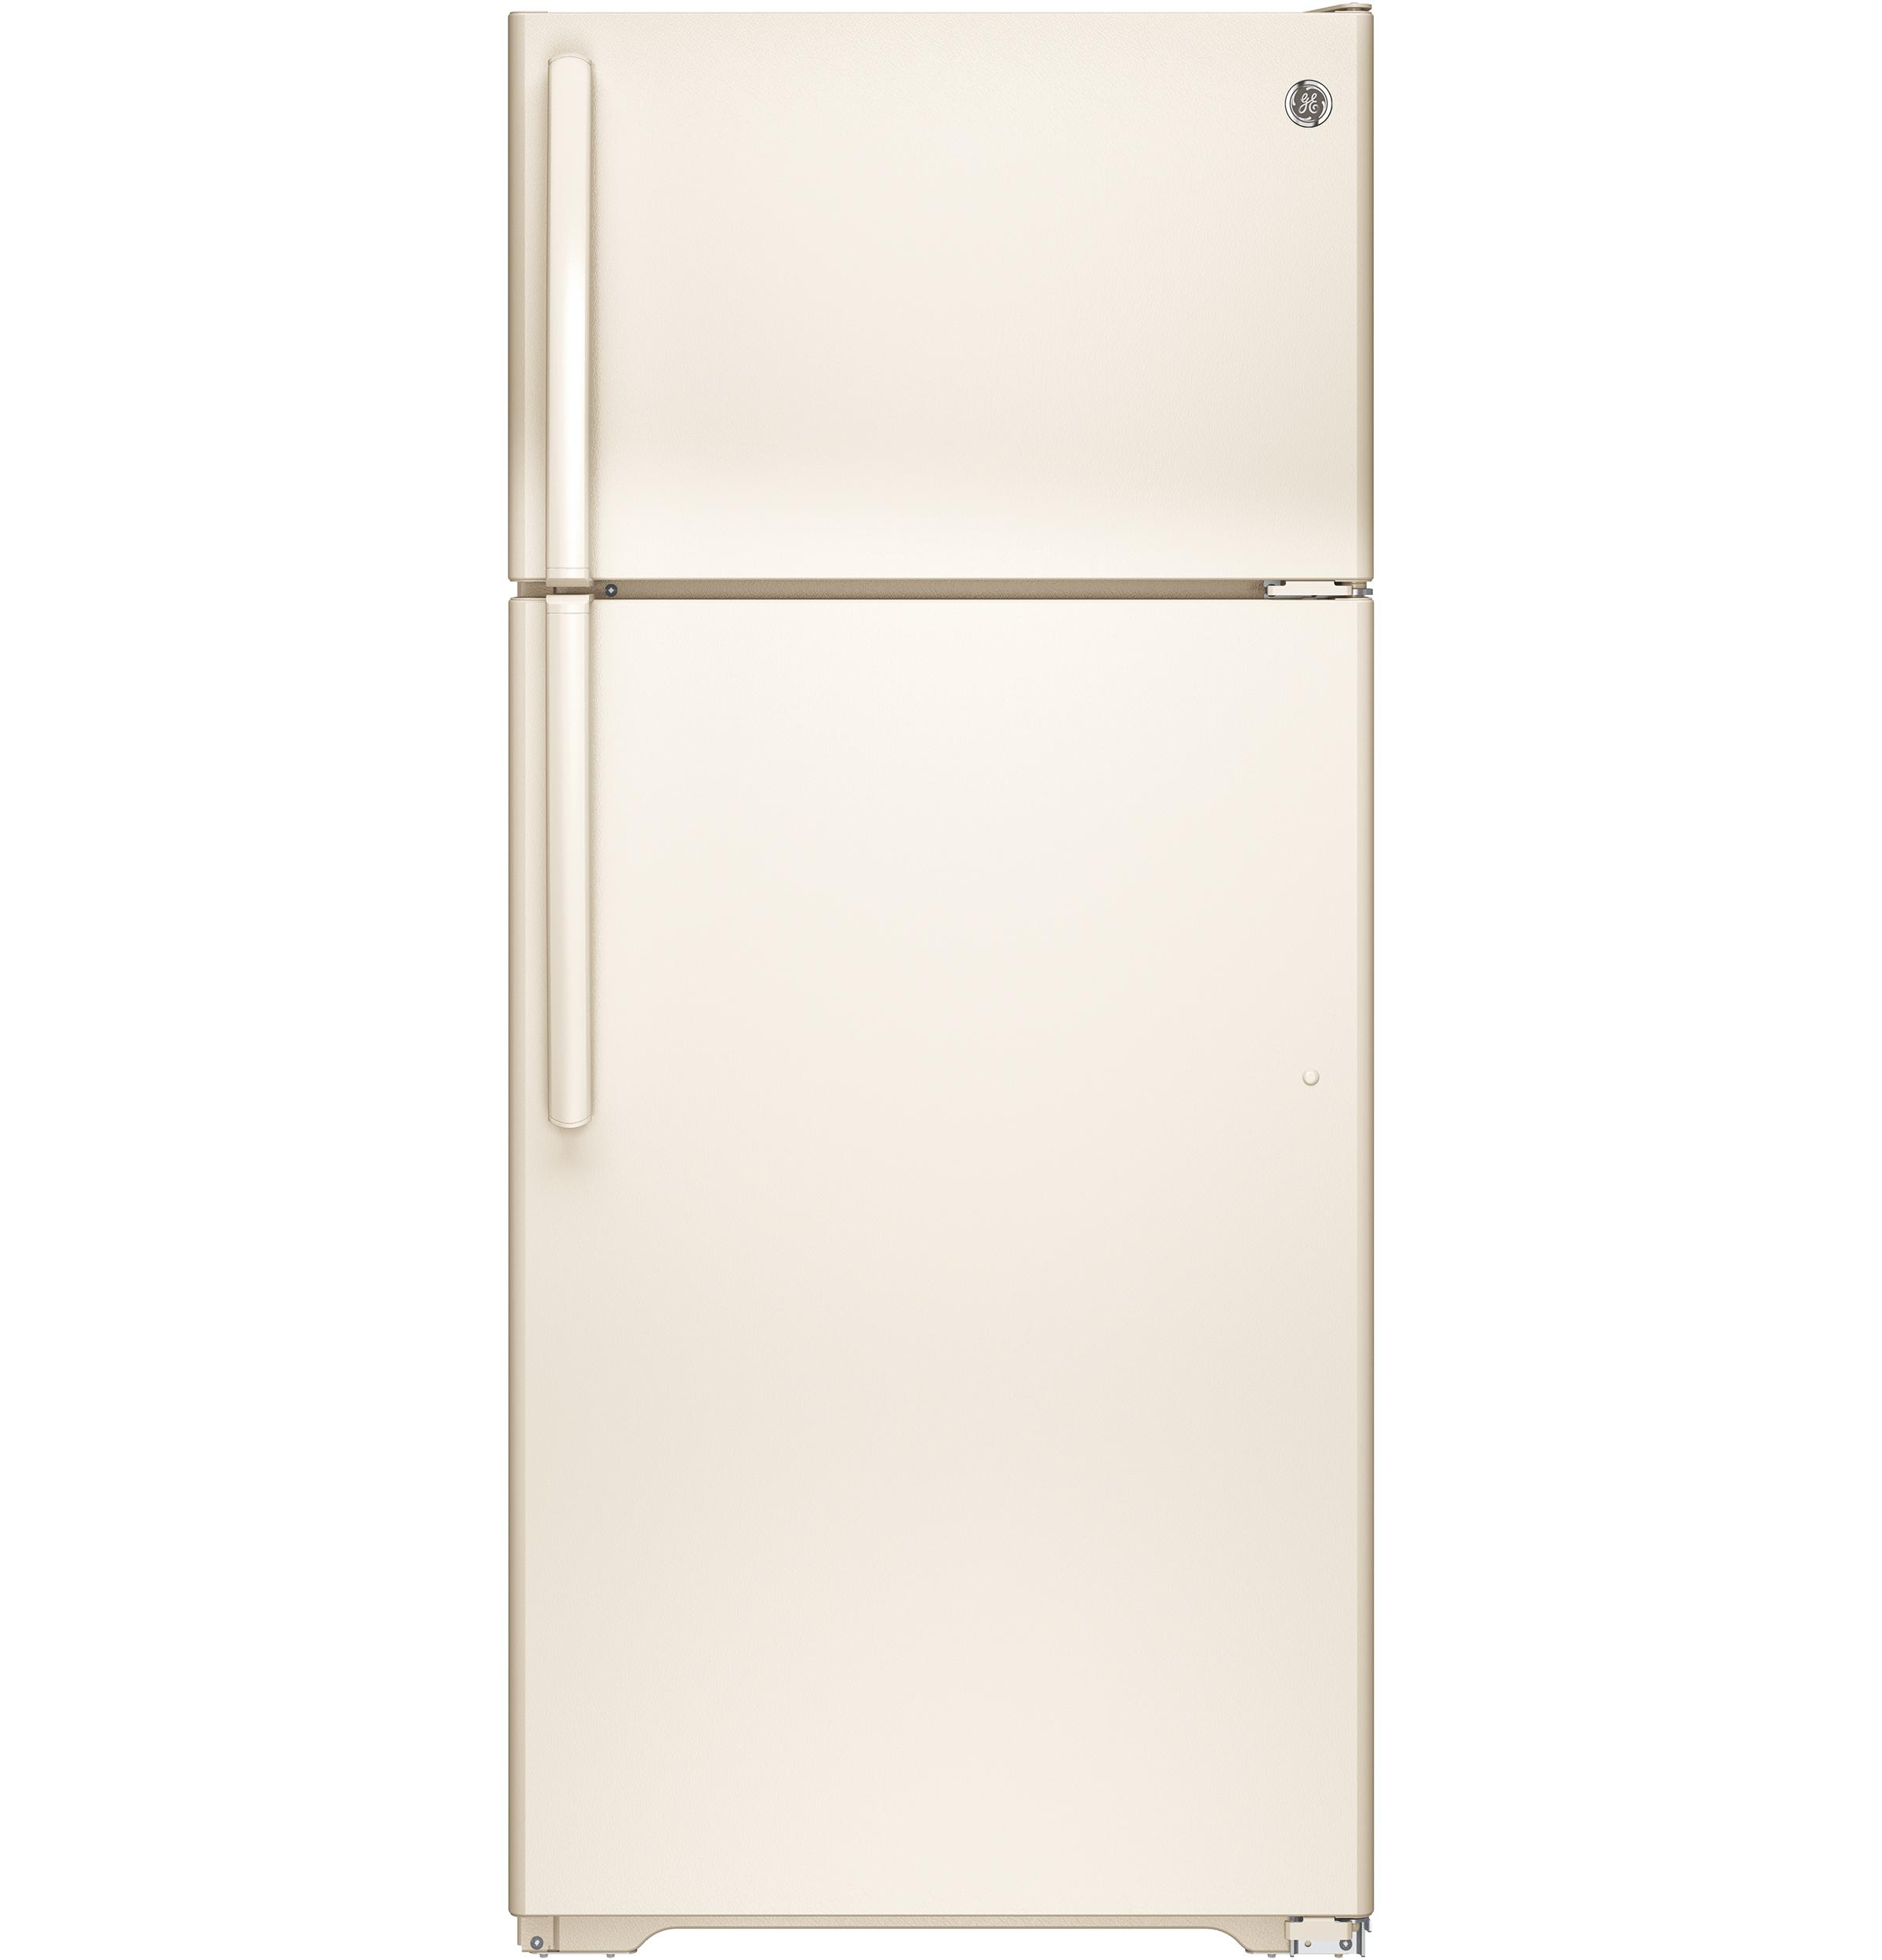 Gte16dthcc Ge Ge 174 Energy Star 174 15 5 Cu Ft Top Freezer